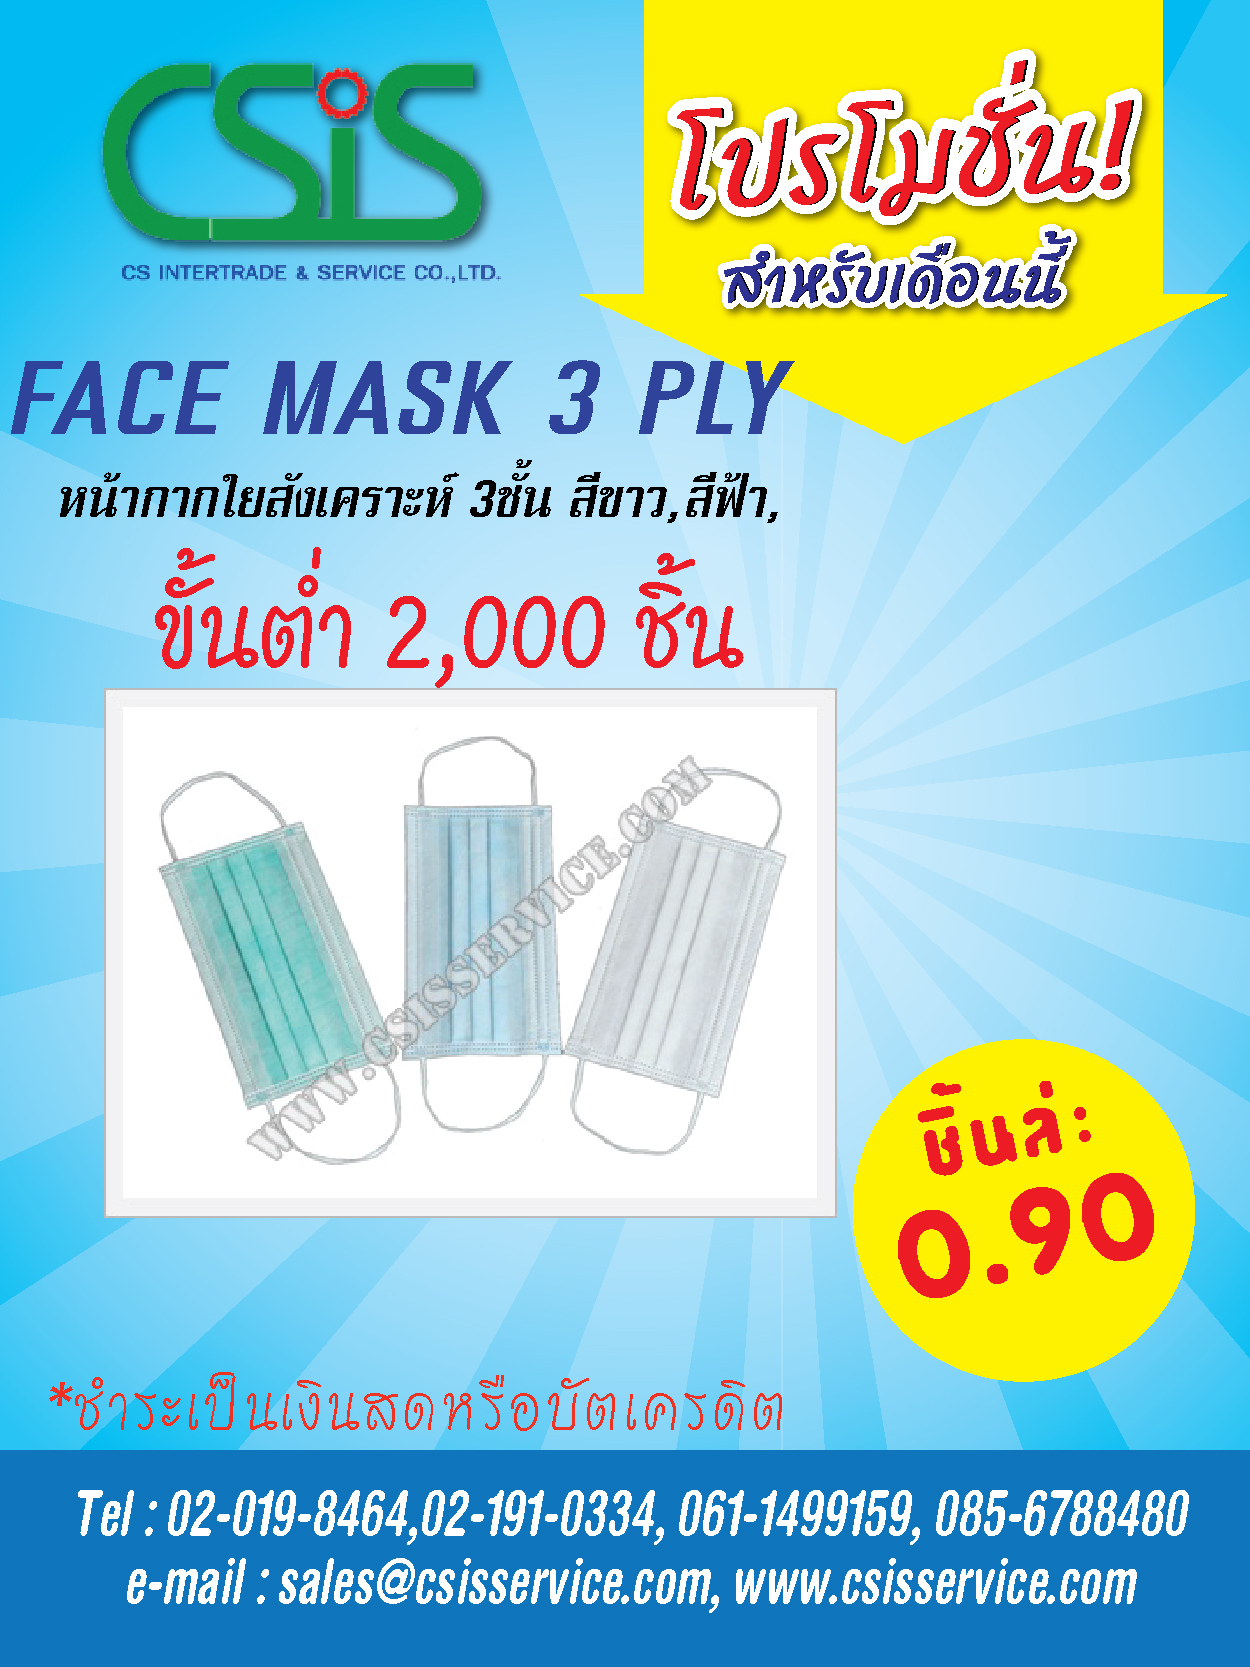 face mask 3 ply, หน้ากากใยสังเคราะห์